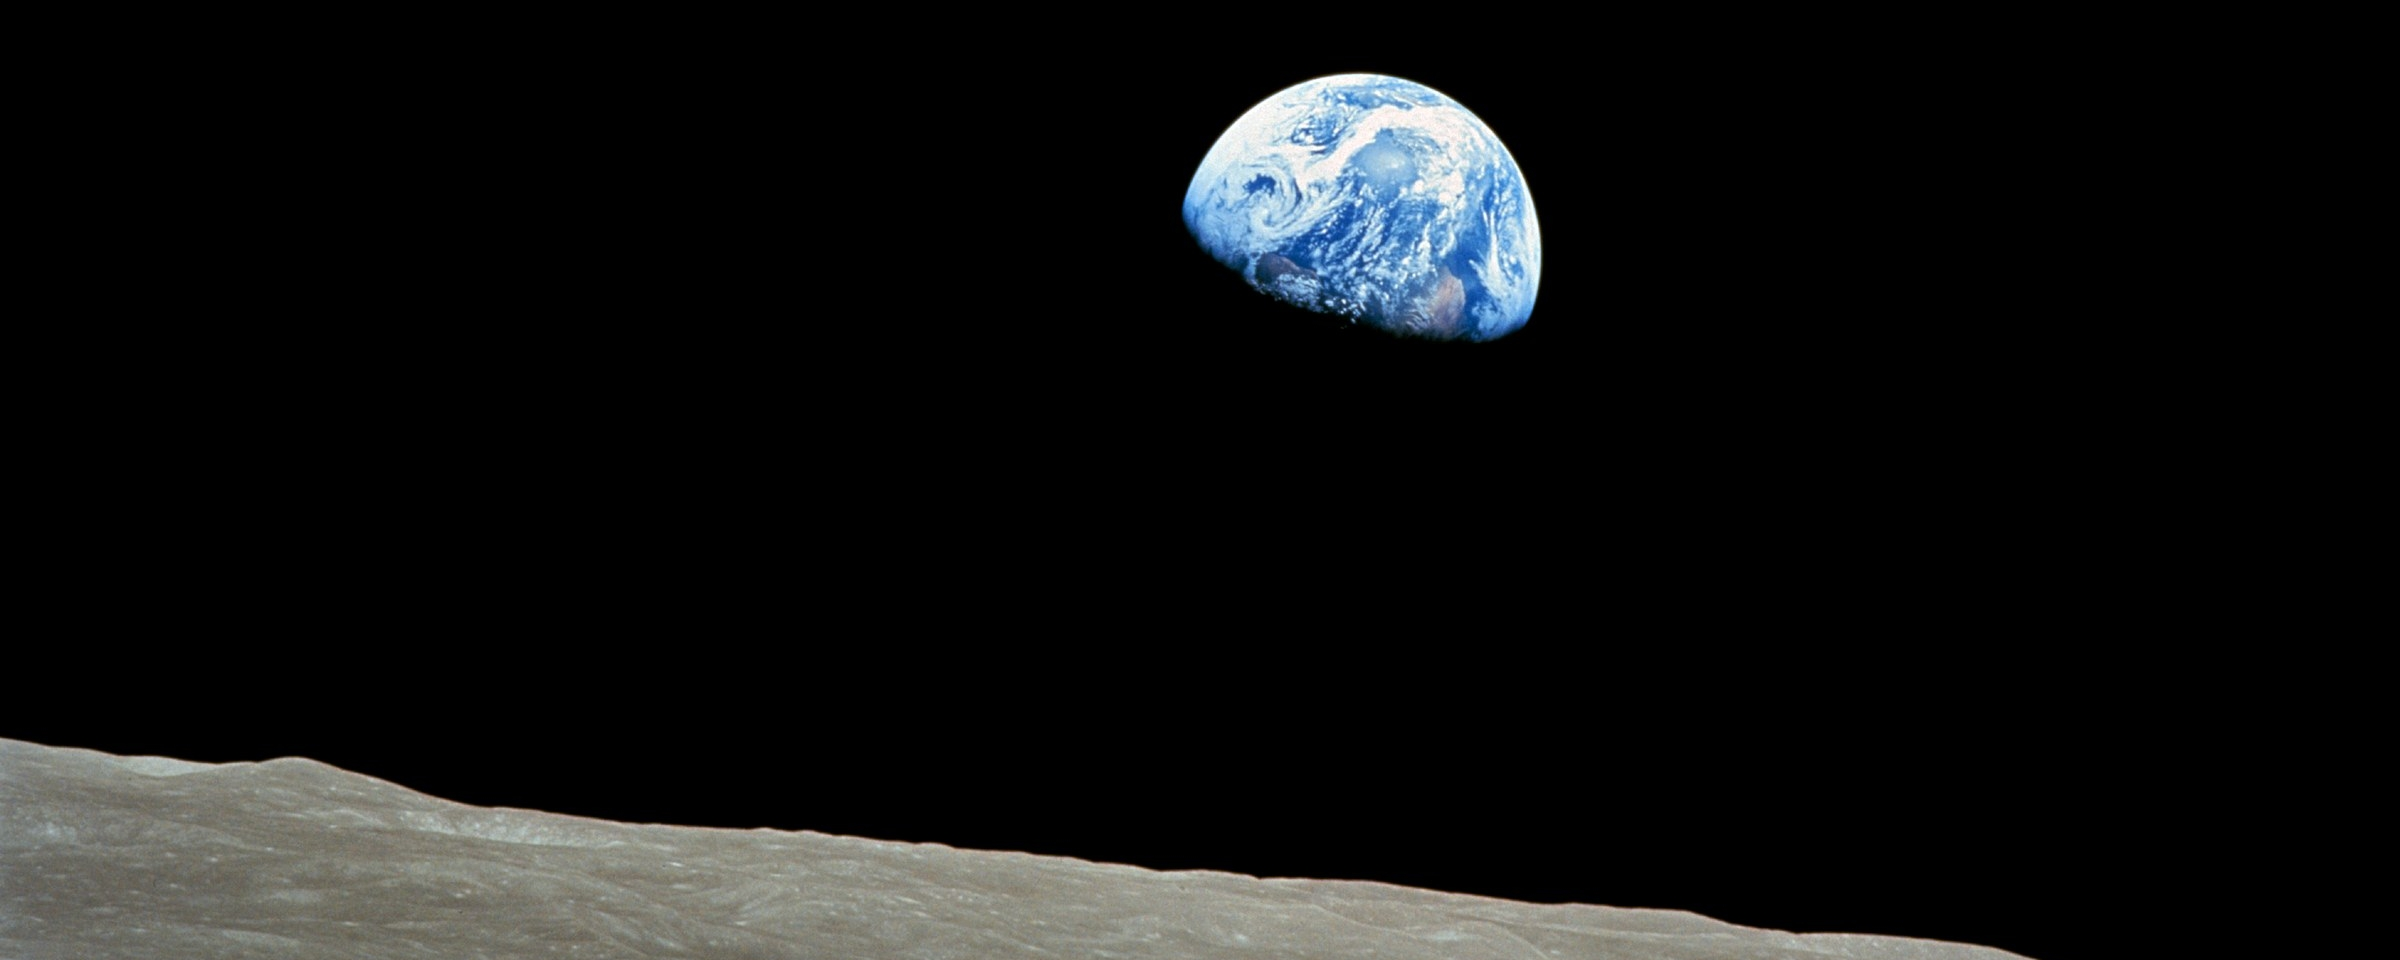 NASA-Apollo8-Dec24-Earthrise-e1401134869424